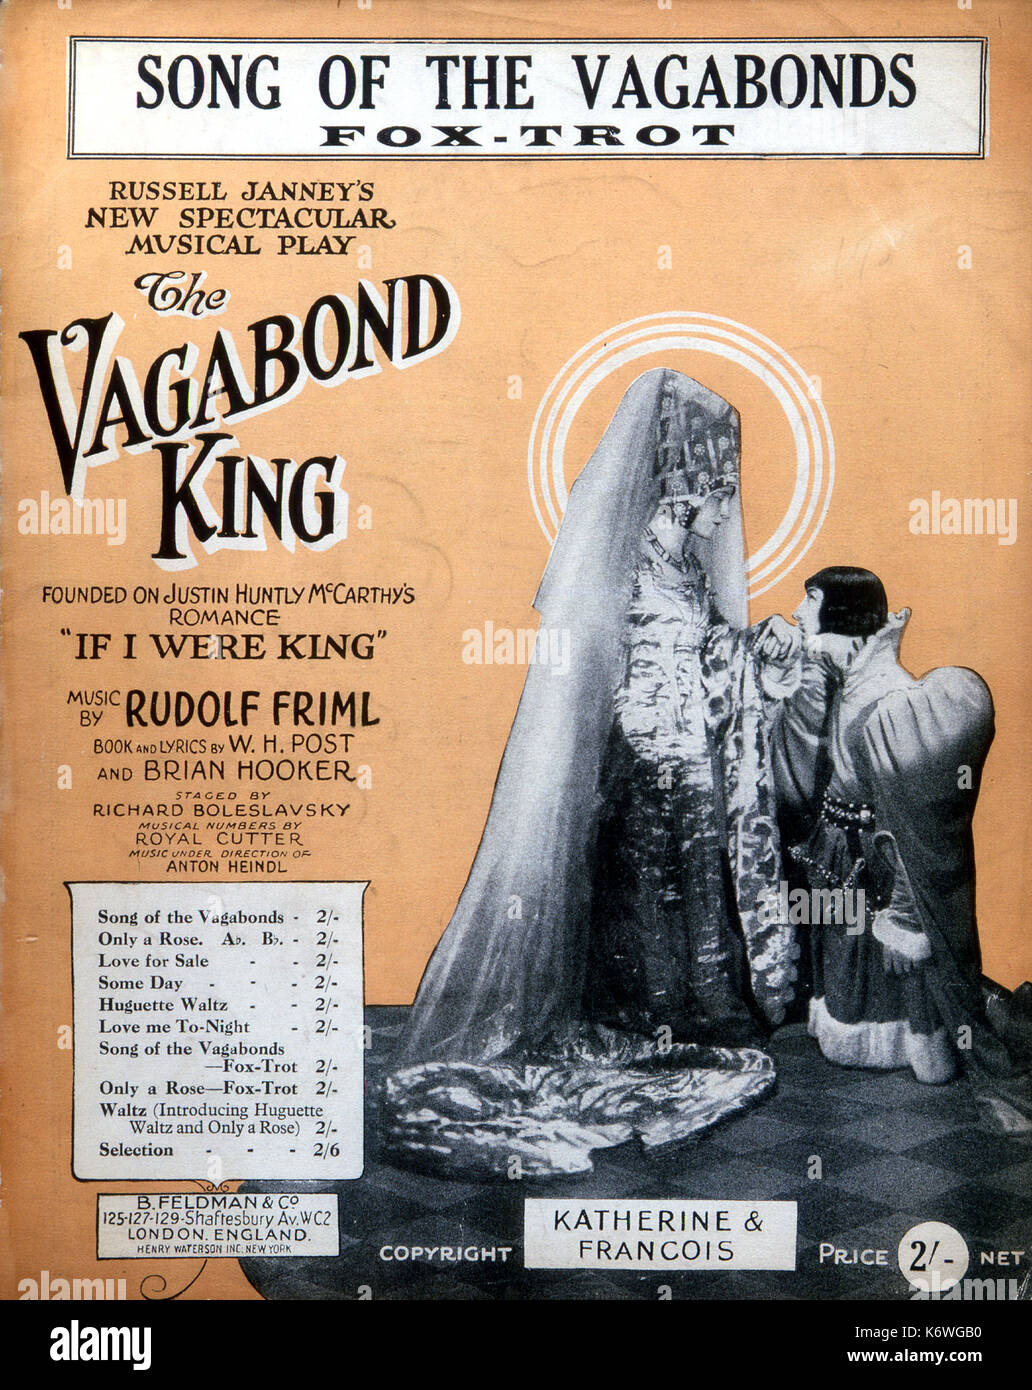 FRIML, Rudolf - THE VAGABOND KING illustrated score cover of 'Song of the vagabonds' from the musical, 'The Vagabond King' Bohemian/American Composer, 1879-1972 - Stock Image